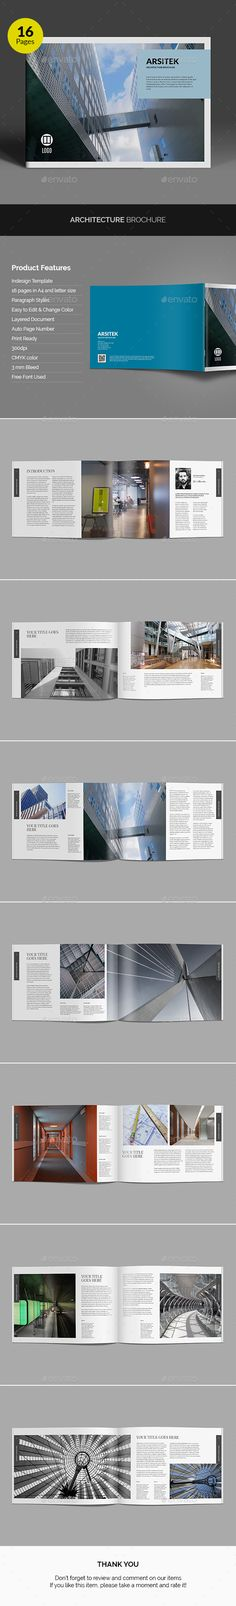 Haweya Architecture Brochure | Brochure Template, Brochures And